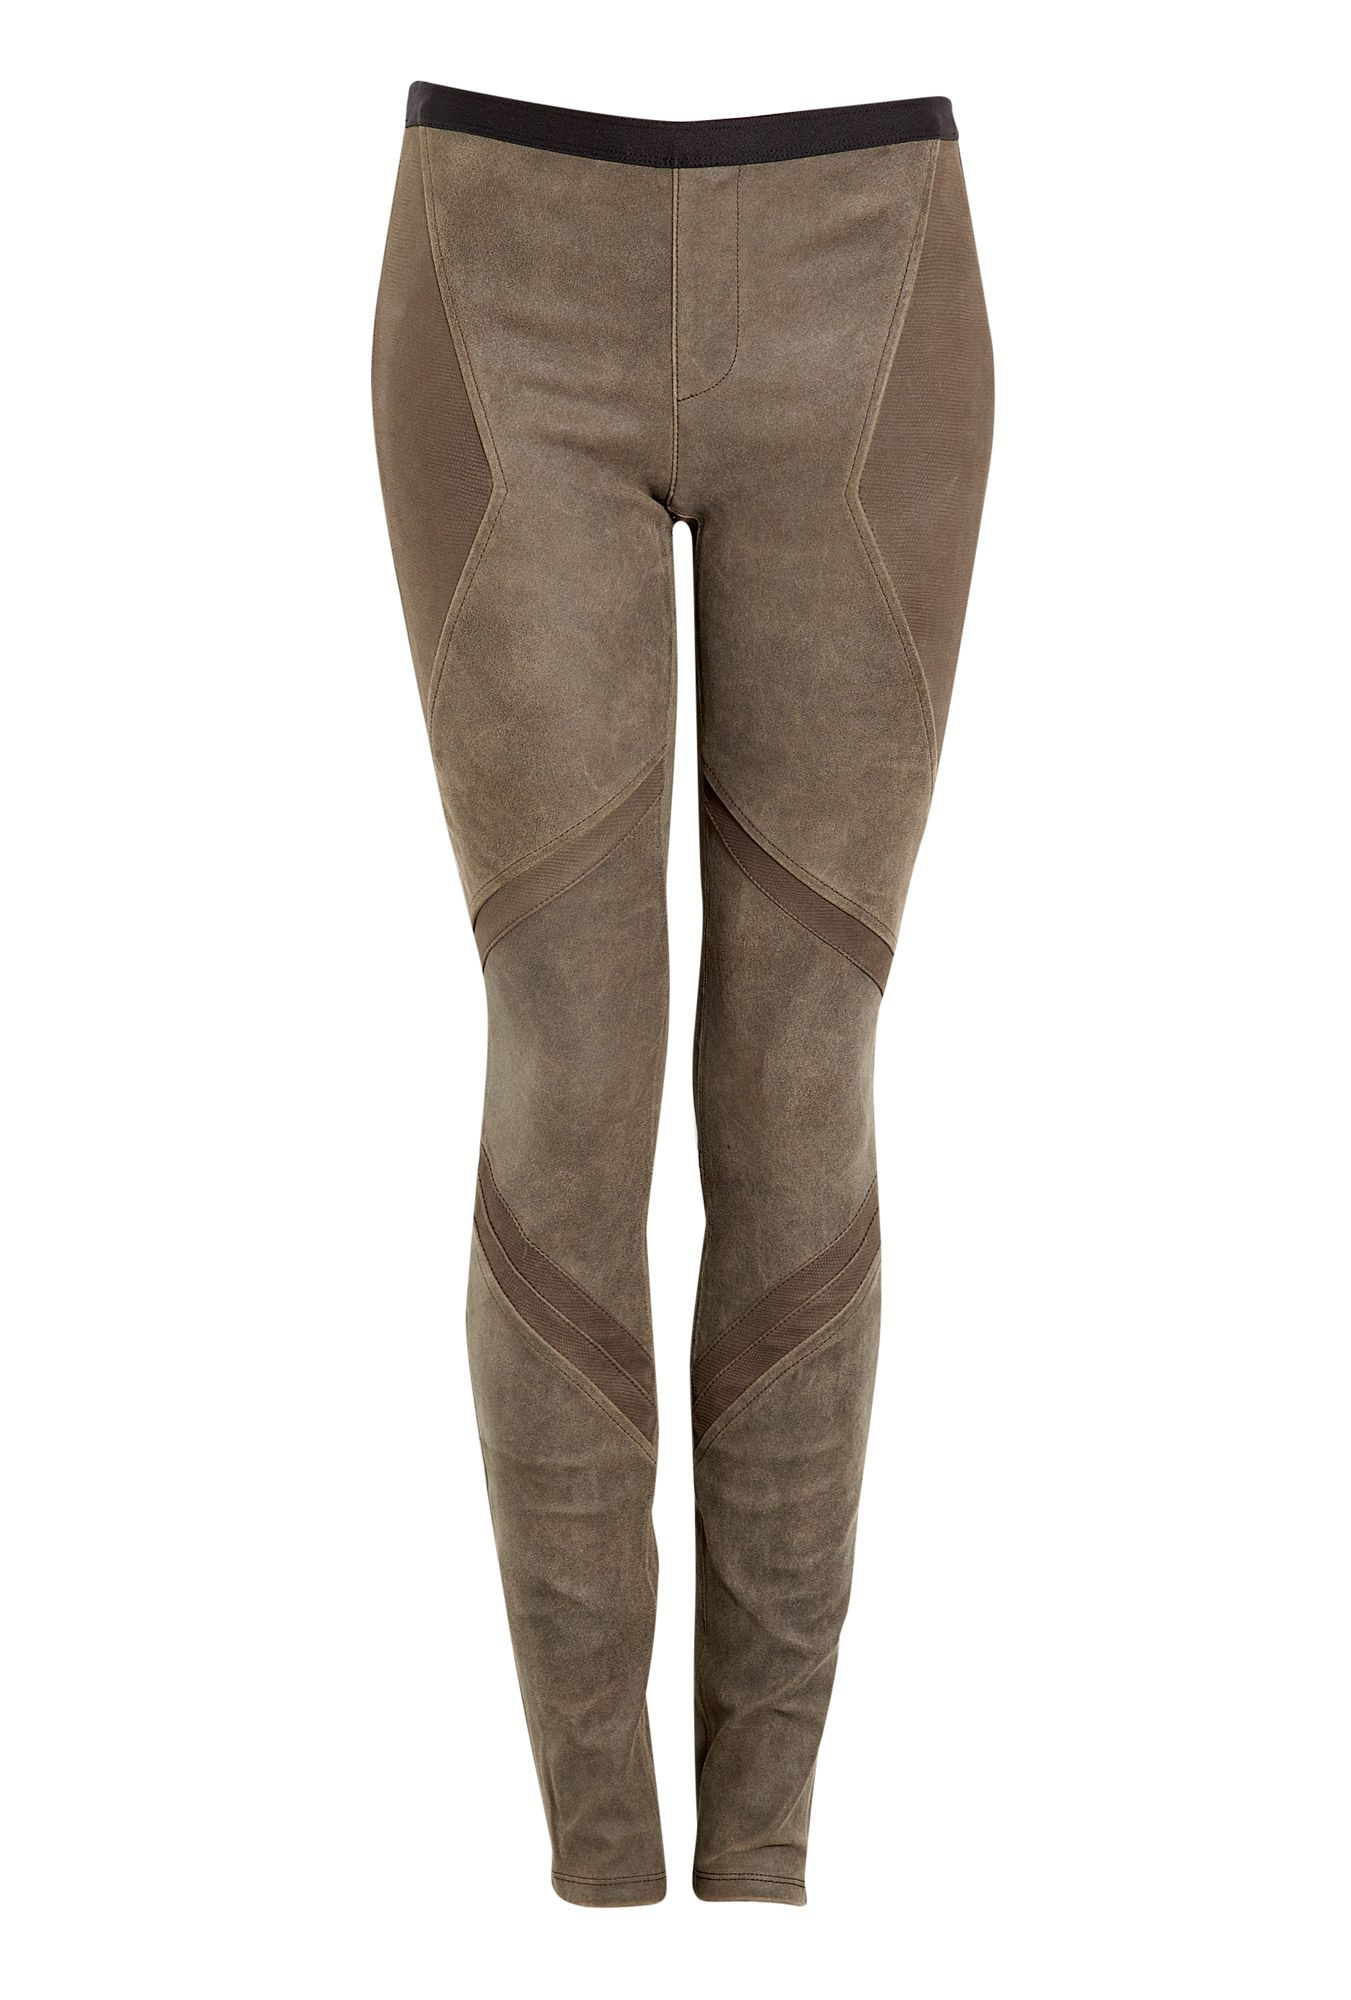 HELMUT LANG PATINA STRETCH LEATHER ARMOUR PANEL LEGGINGS   BEAUTIFUL ... a91f0fdeae